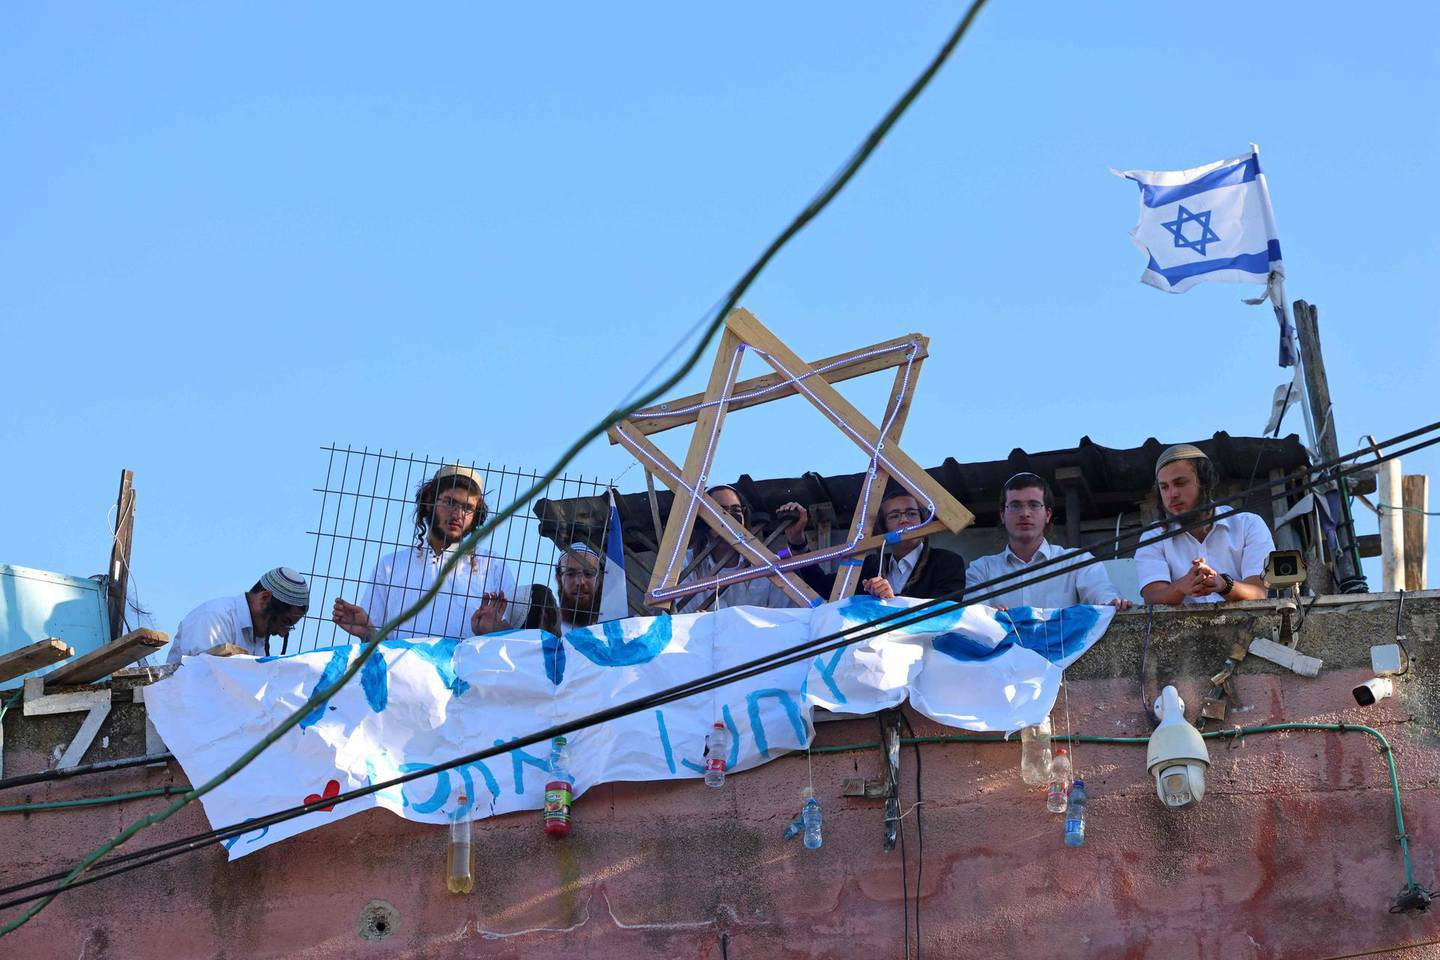 Israeli settlers sit on the rooftop of a house decorated with the Star of David in the Sheikh Jarrah neighbourhood of east Jerusalem on May 15, 2021.  / AFP / EMMANUEL DUNAND